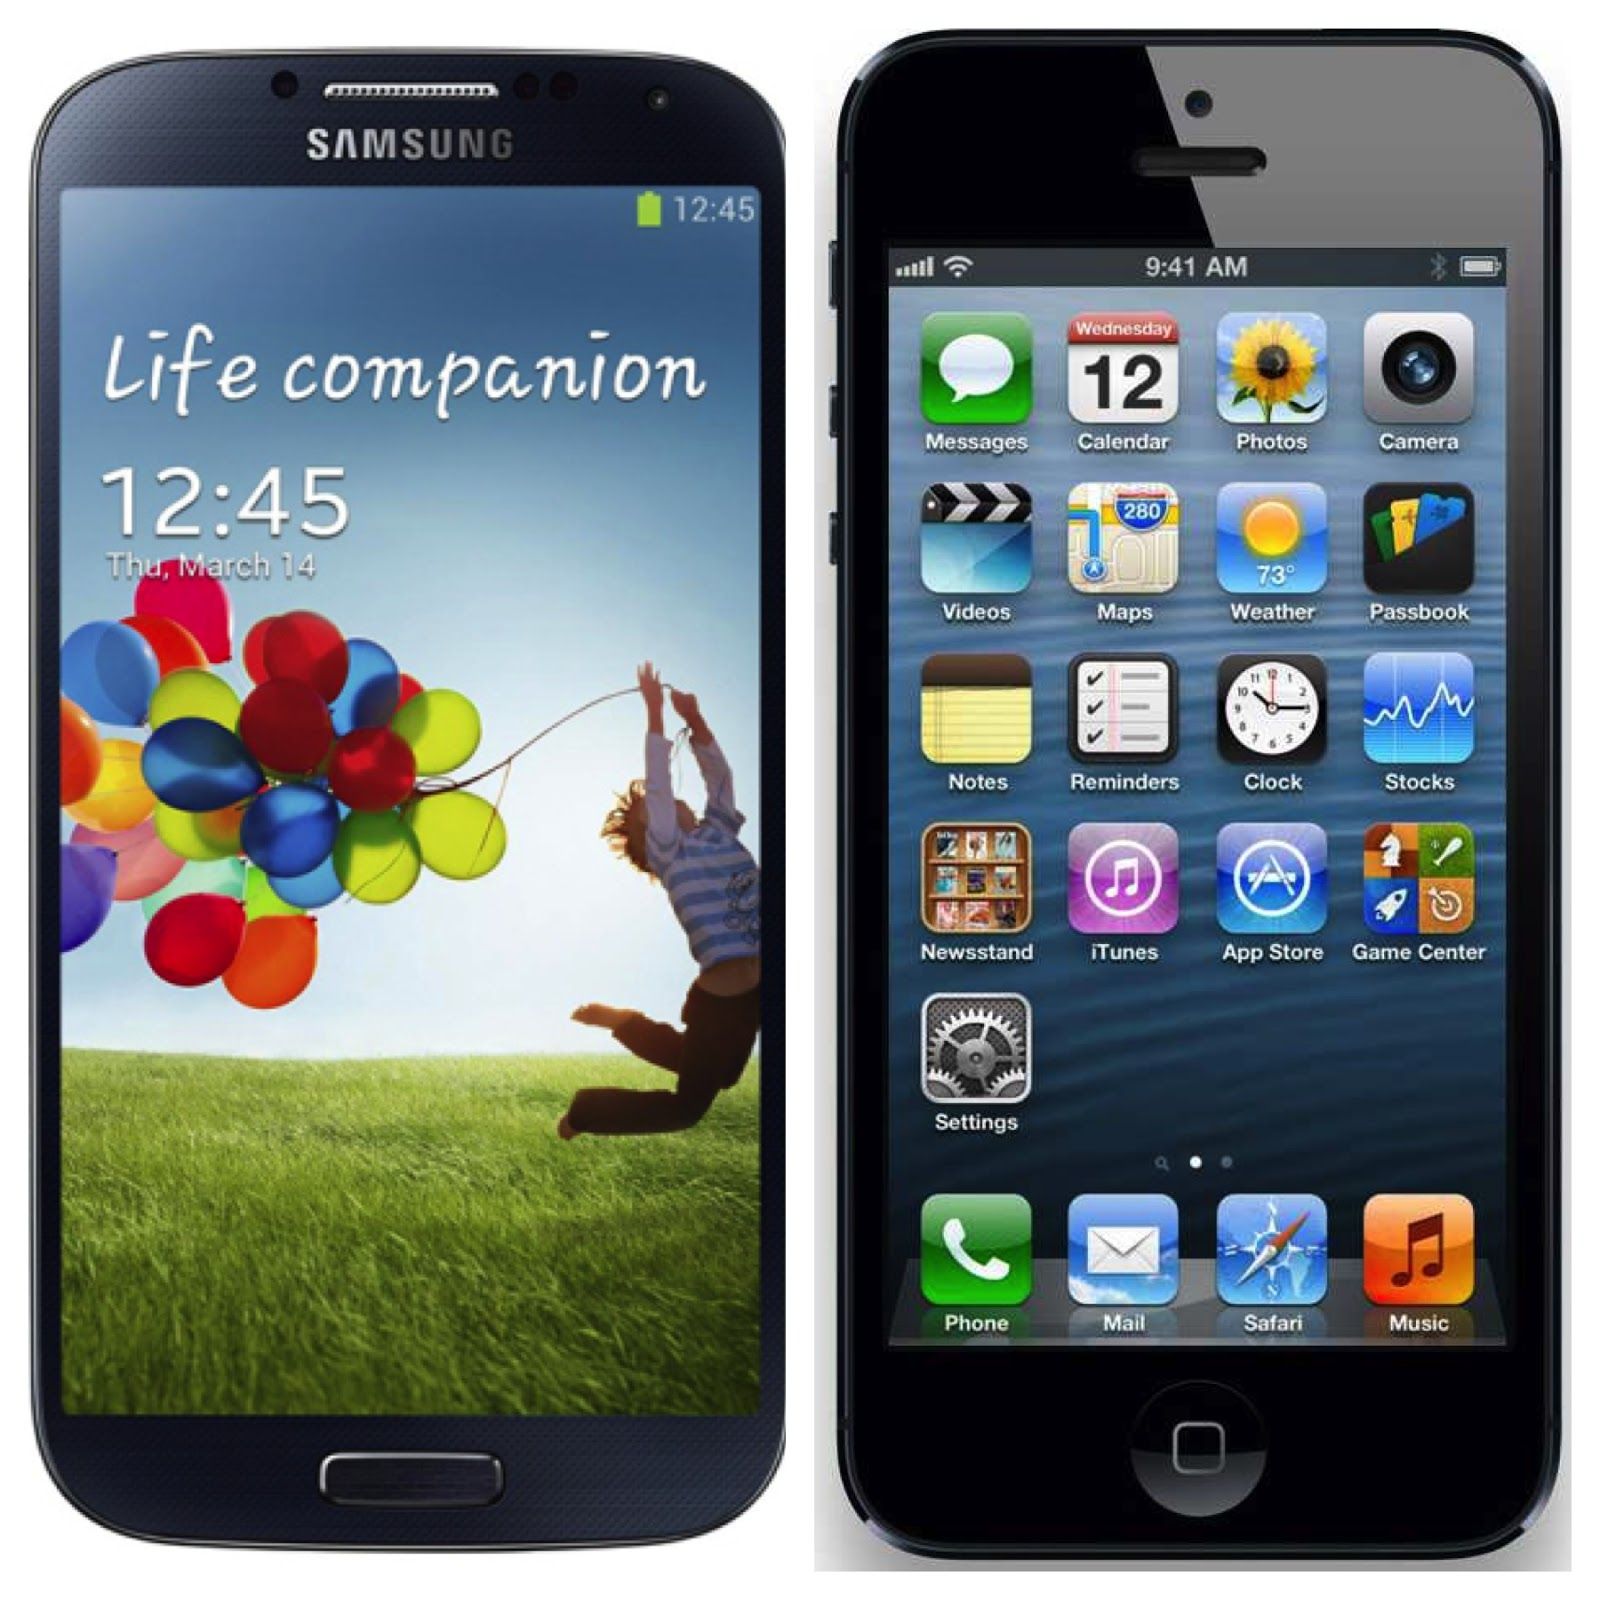 Samsung Galaxy S4 vs. Apple iPhone 5 in Details